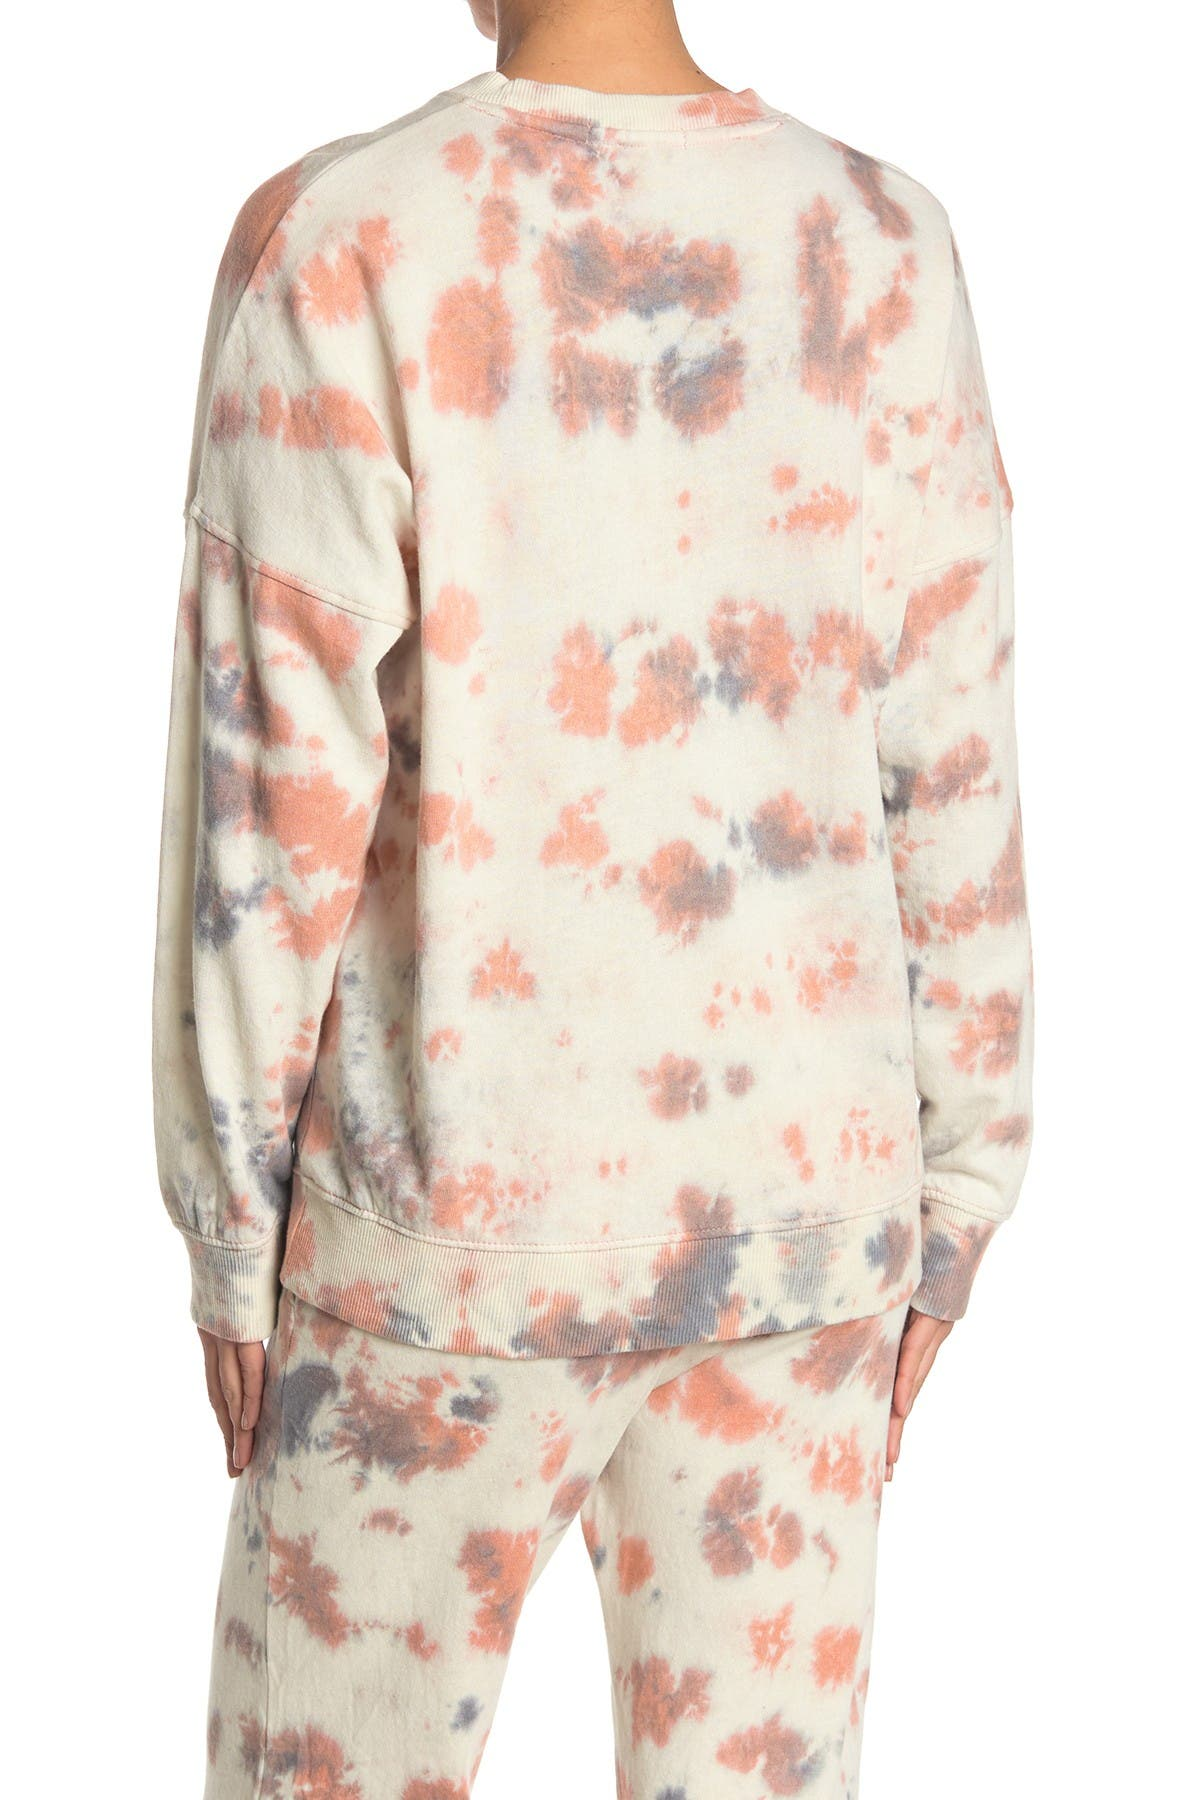 Image of Threads 4 Thought Cathy Boyfriend Tie-Dye Organic Cotton Blend Pullover